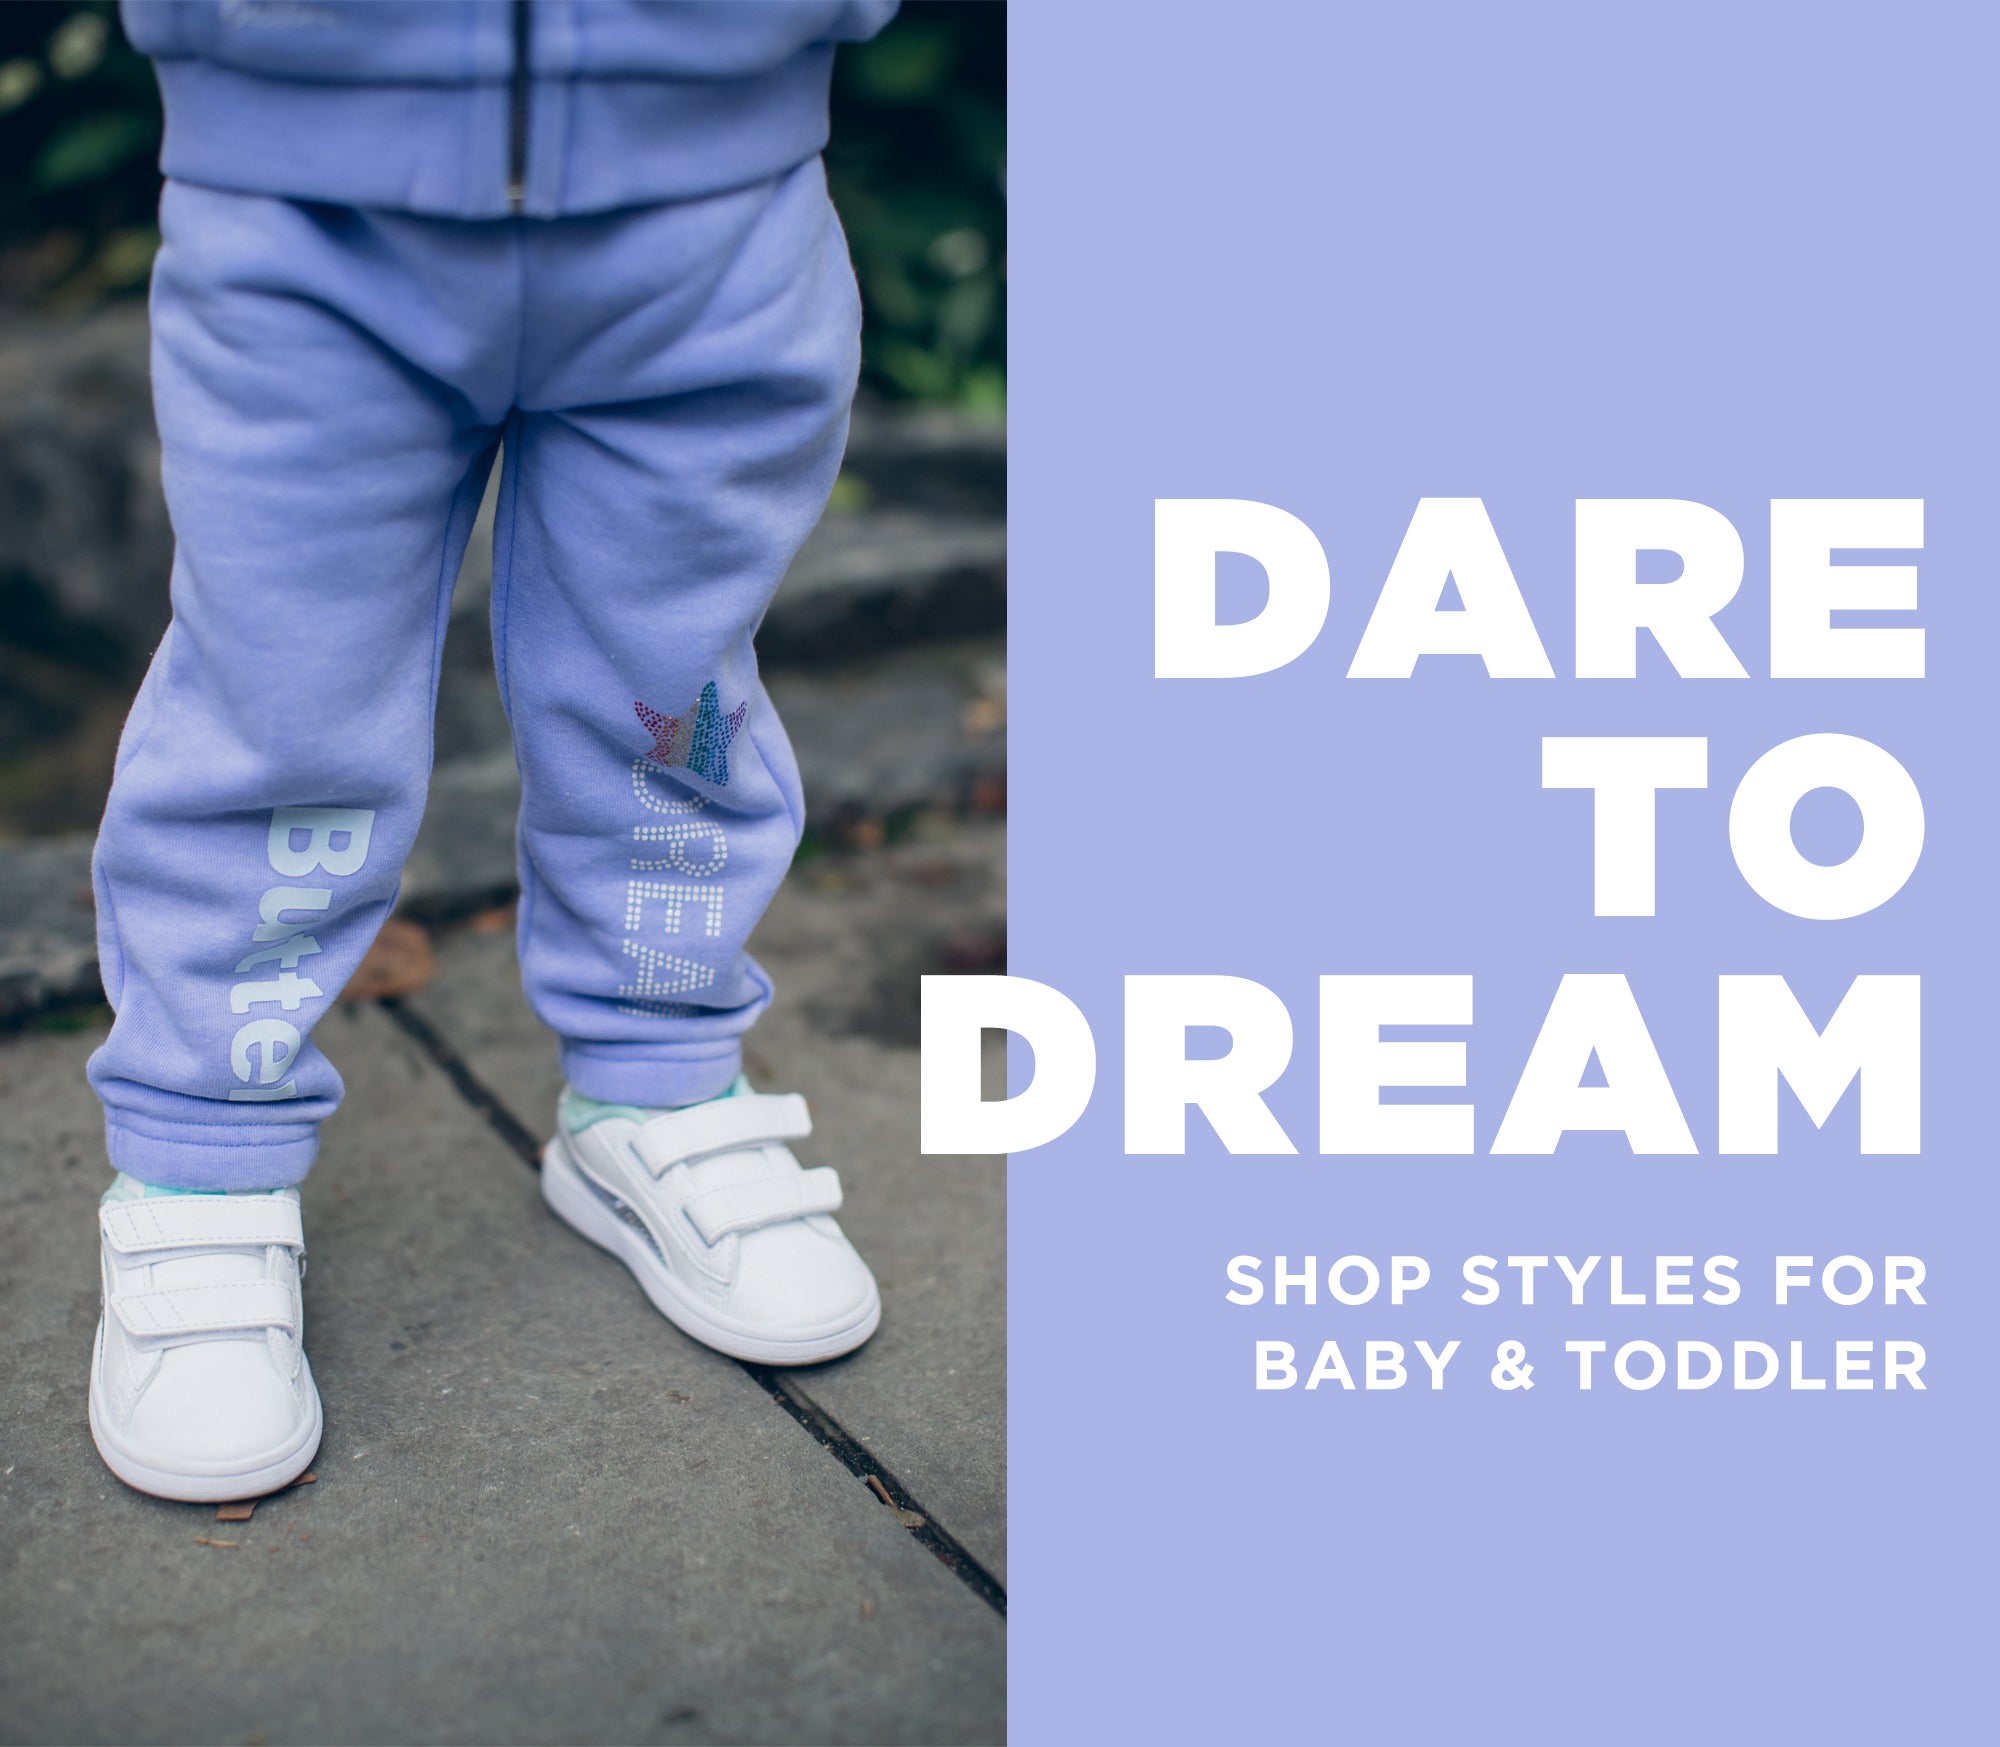 Dare to dream. Shop styles for baby & toddler.